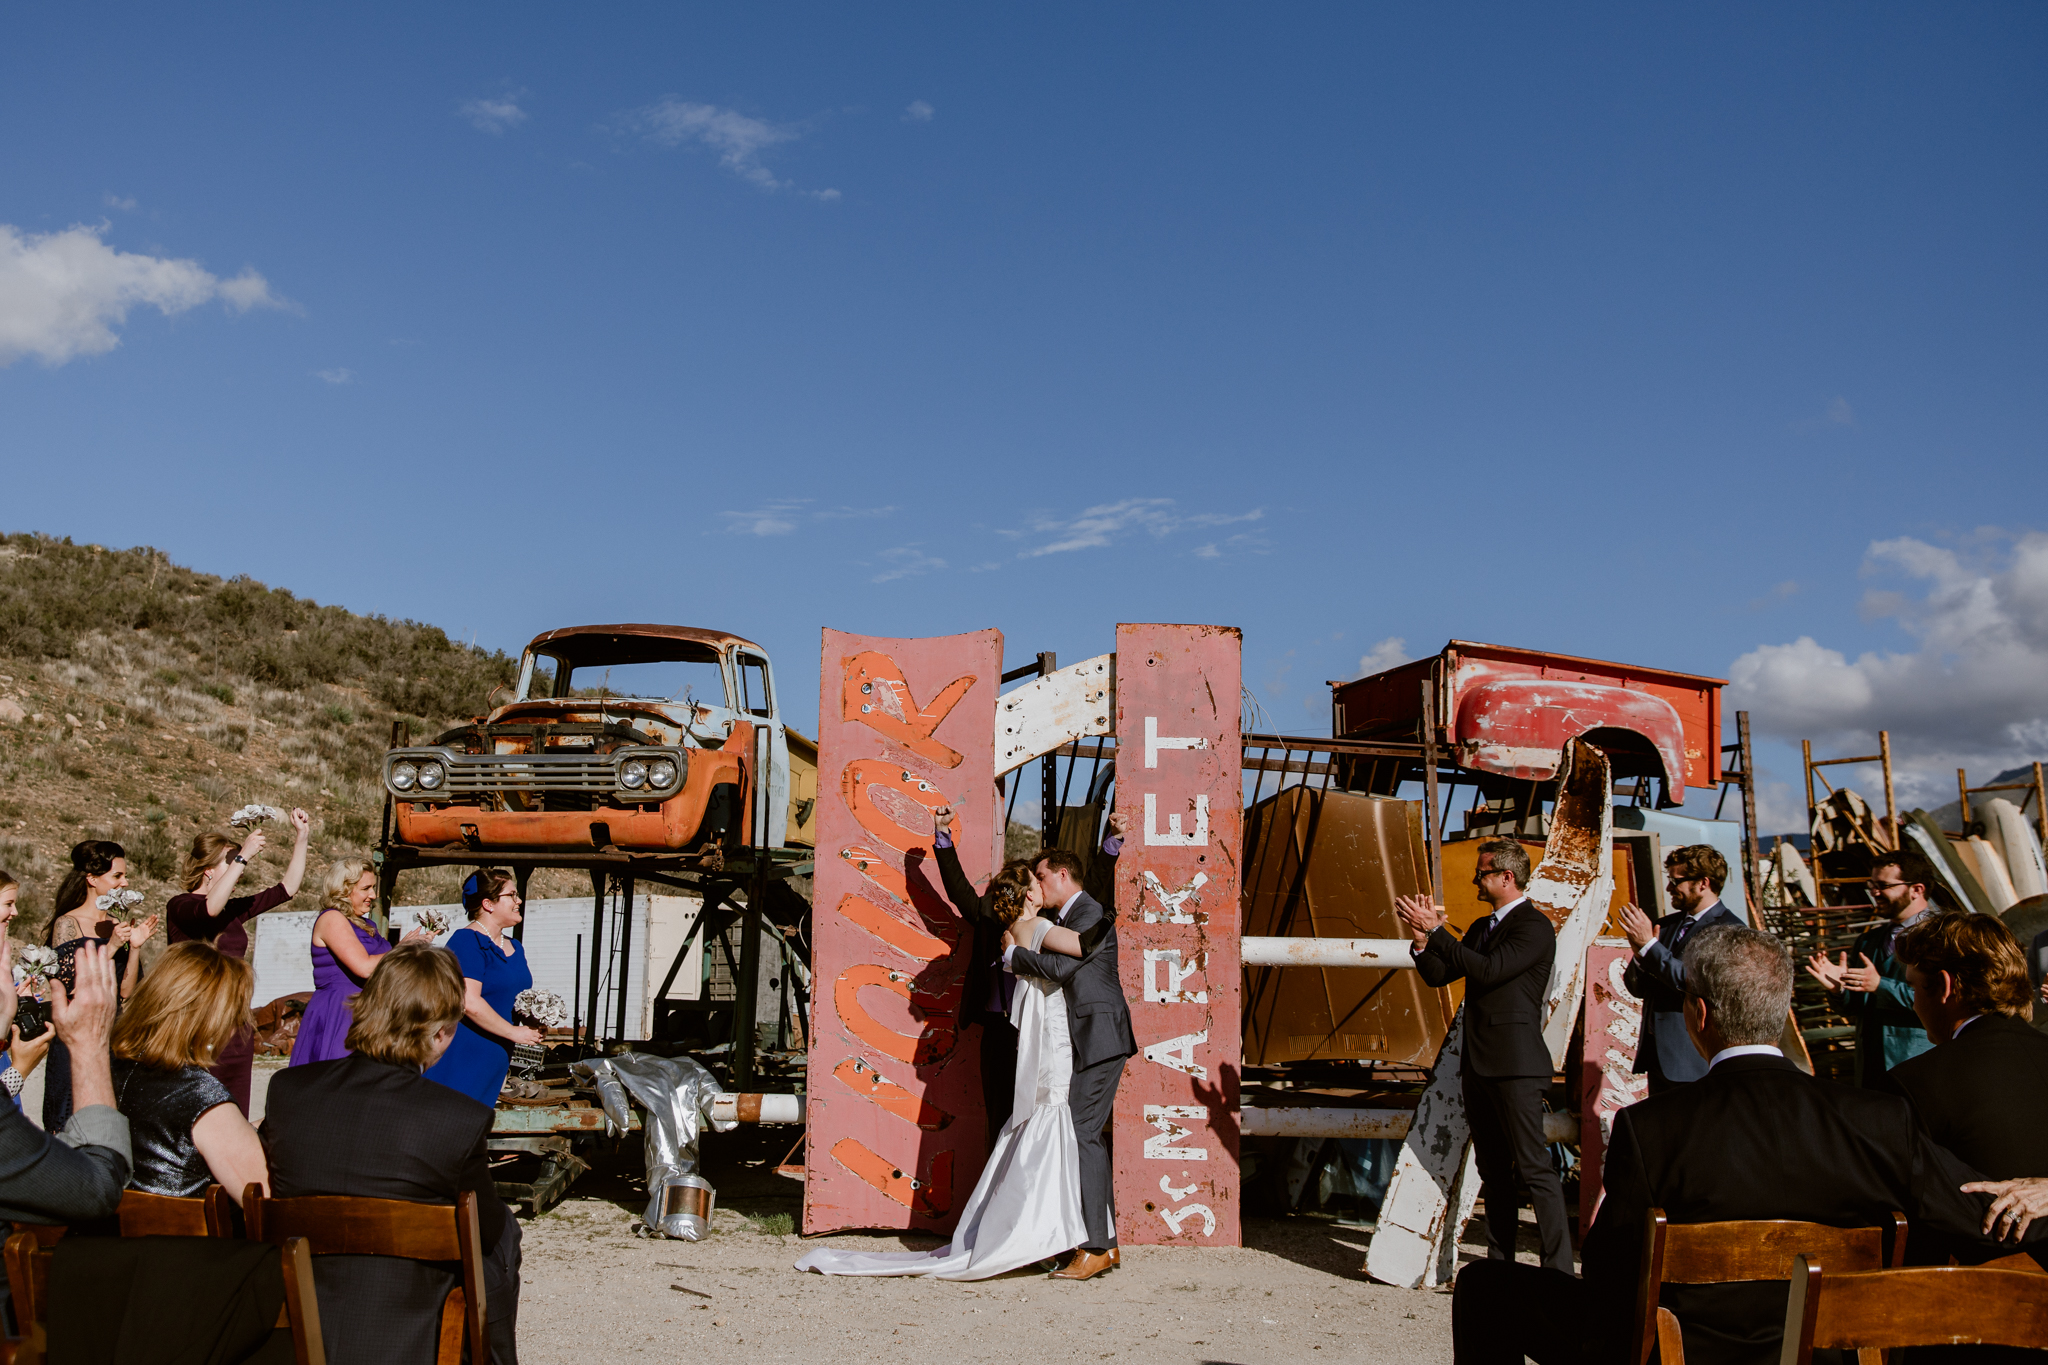 middleton-ranch-wedding-time-travel-theme-marble-rye-photography-015.jpg